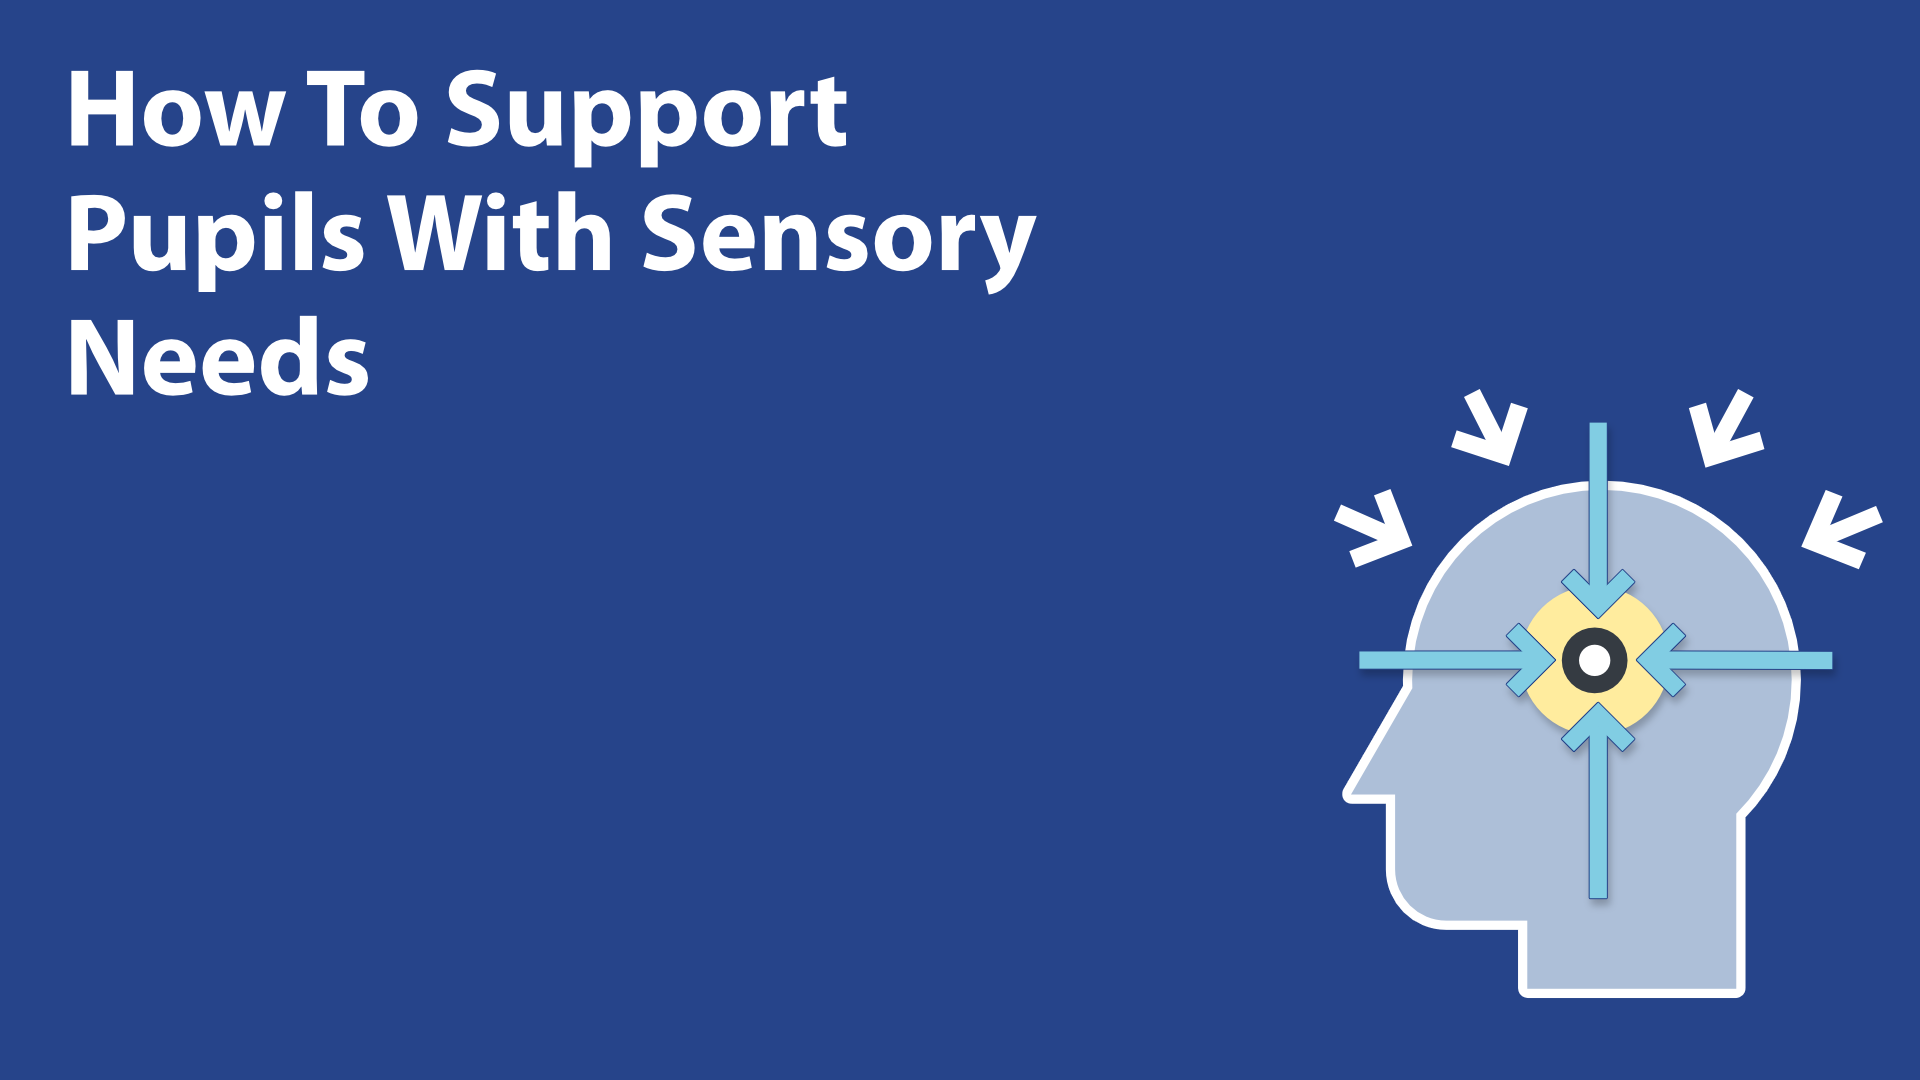 How To Support Pupils With Sensory Needs image